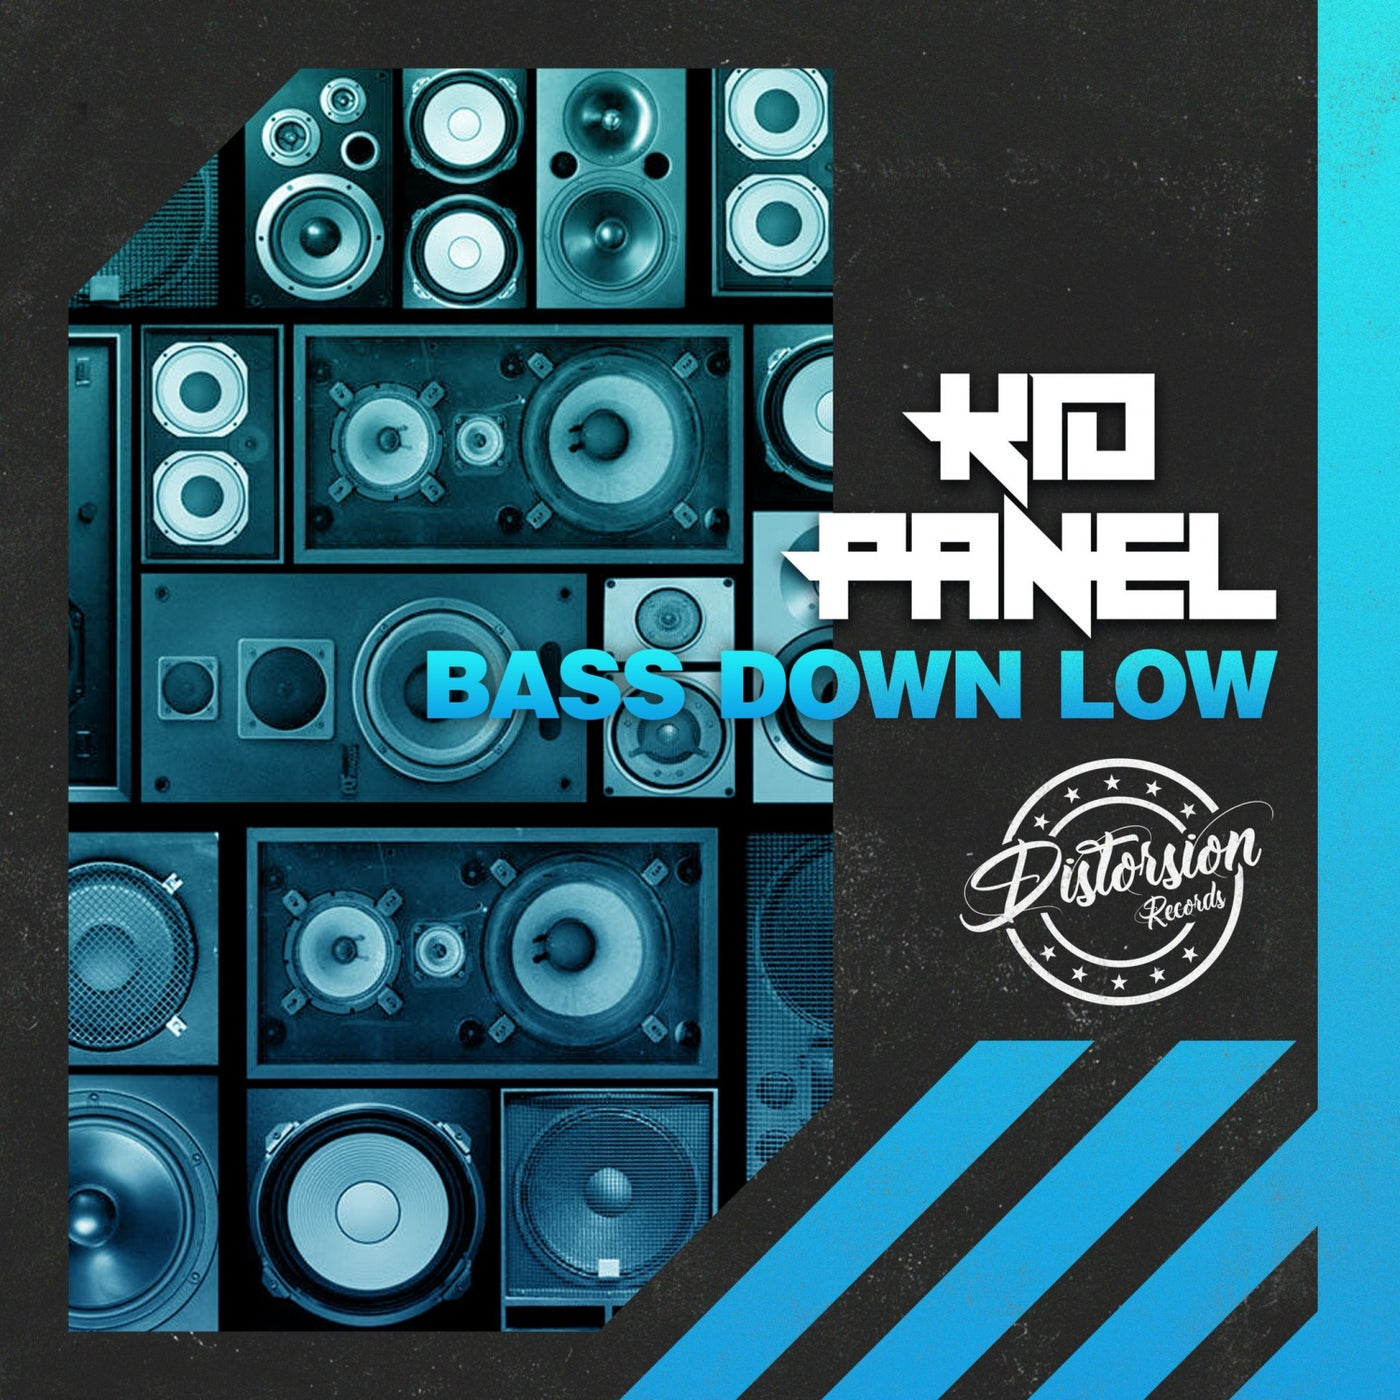 Bass Down Low (Original Mix)